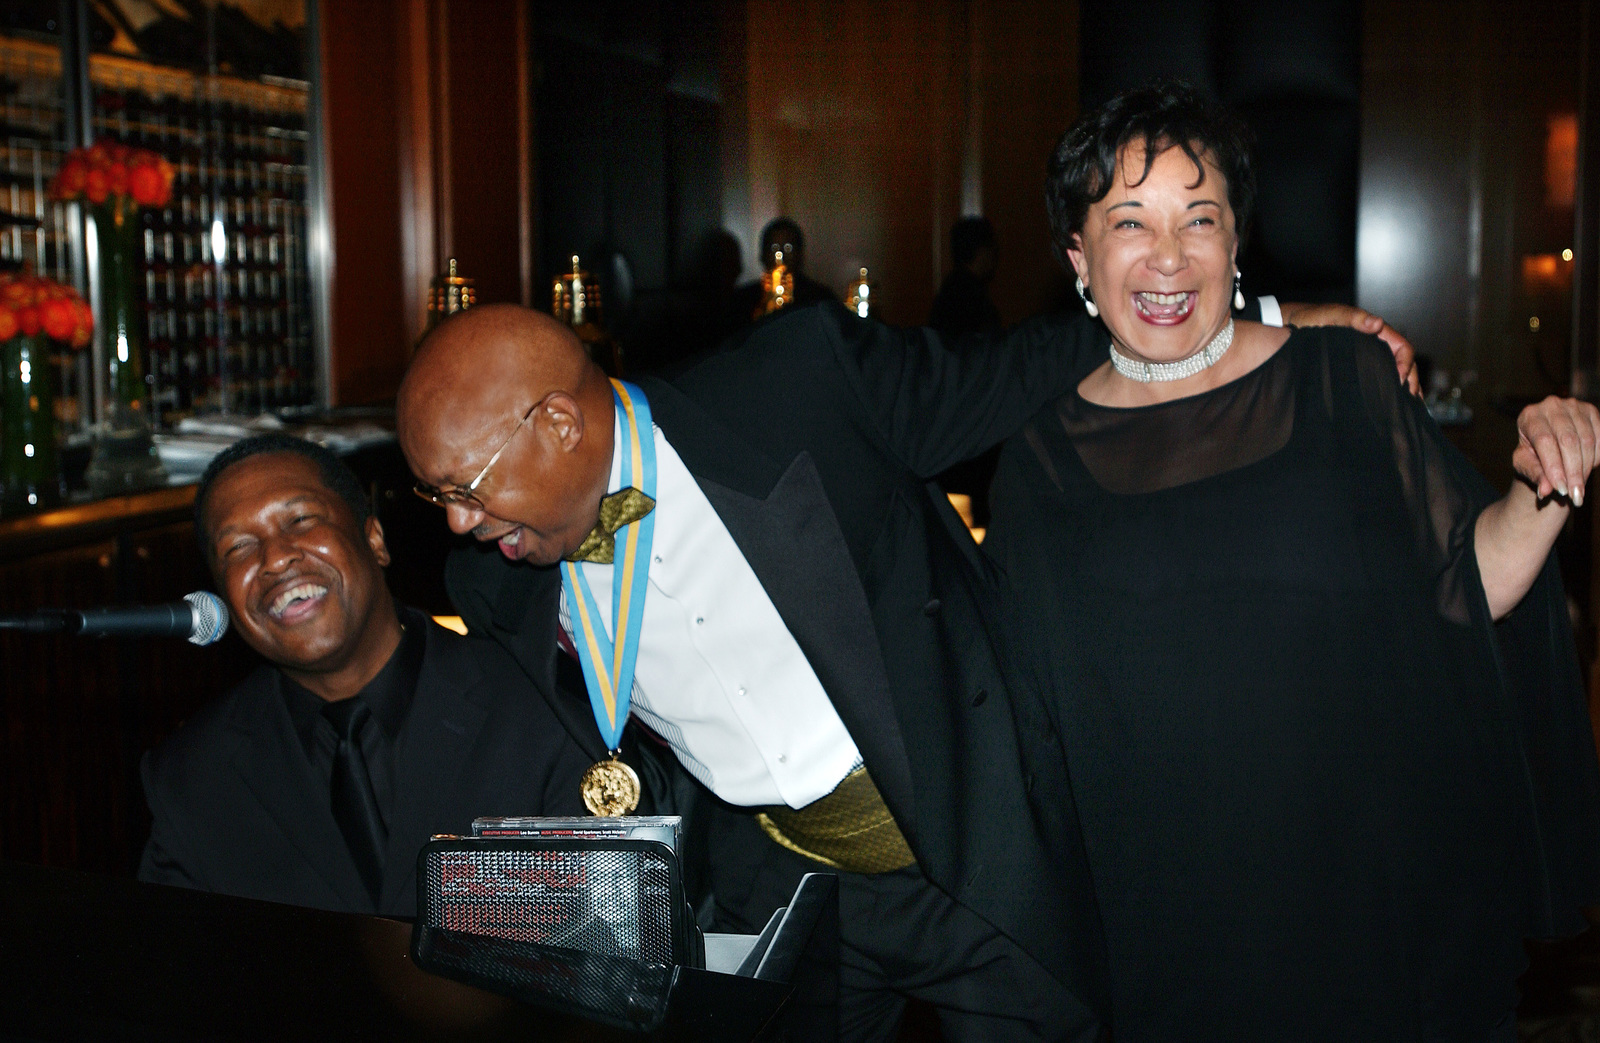 [Highlights from] Academy of Achievement Awards in Los Angeles, California, attended by Secretary Alphonso Jackson